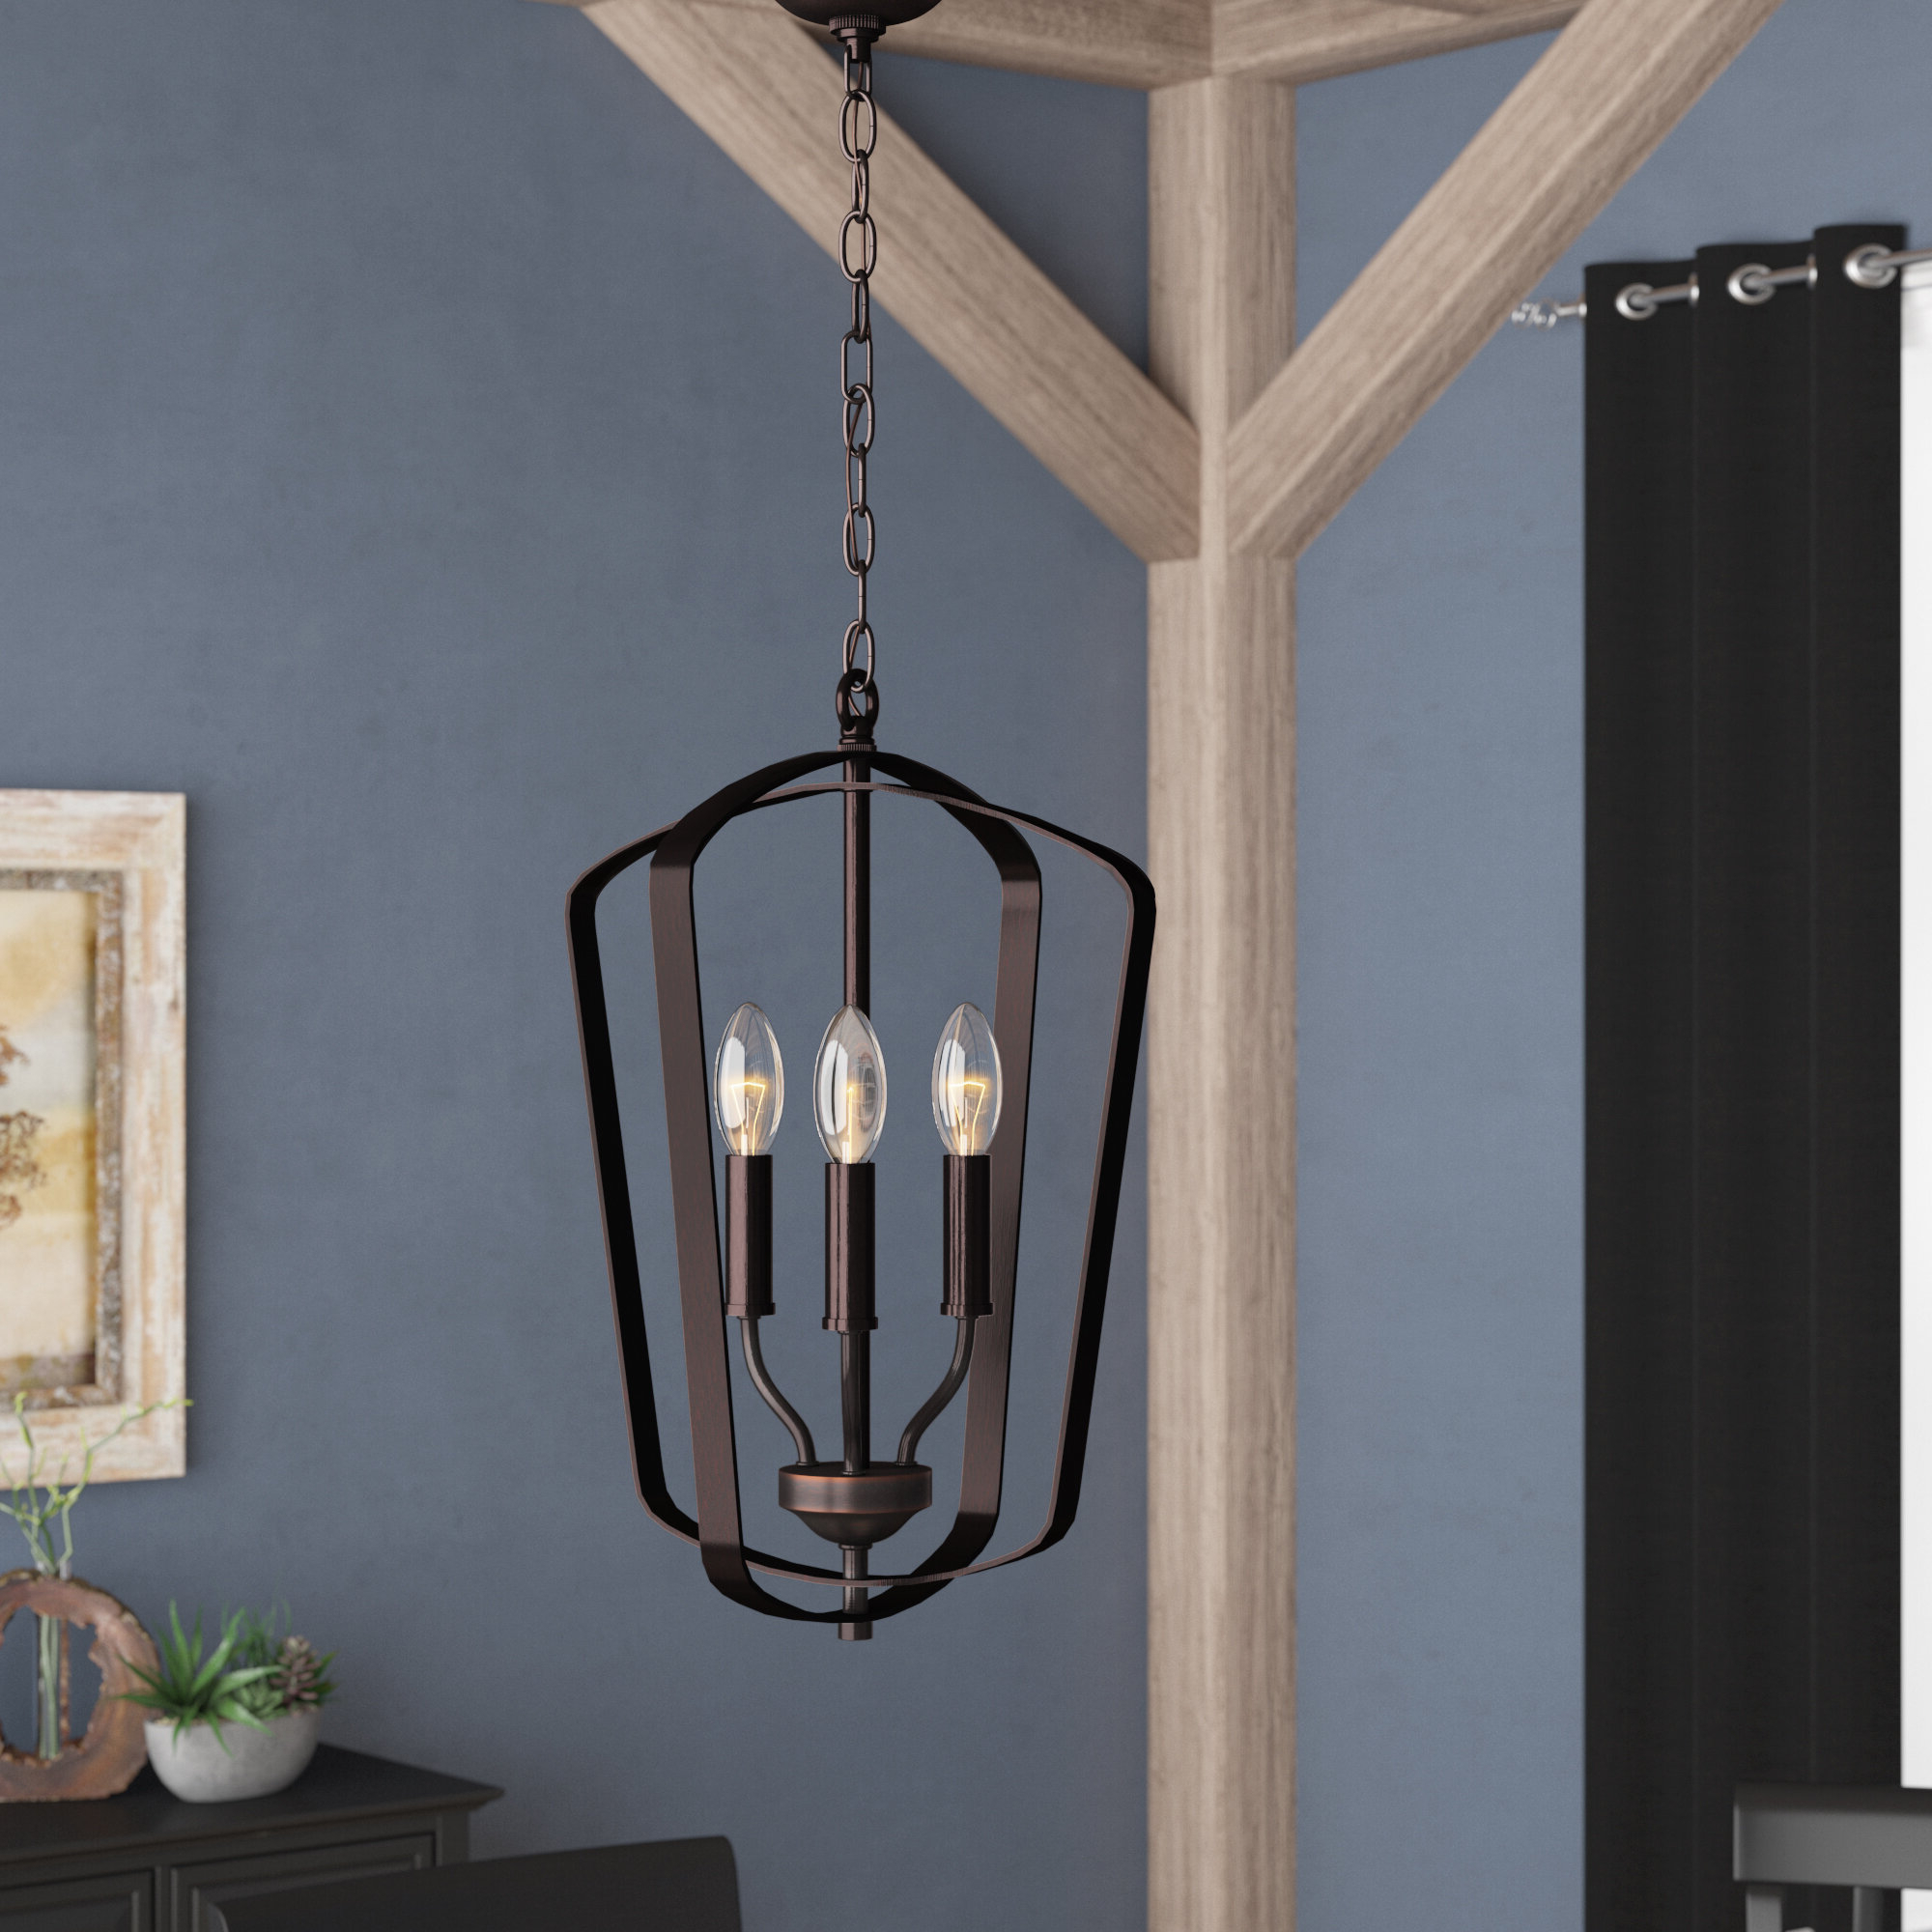 Preferred Firman 3 Light Single Geometric Pendant Regarding Chauvin 3 Light Lantern Geometric Pendants (View 5 of 25)